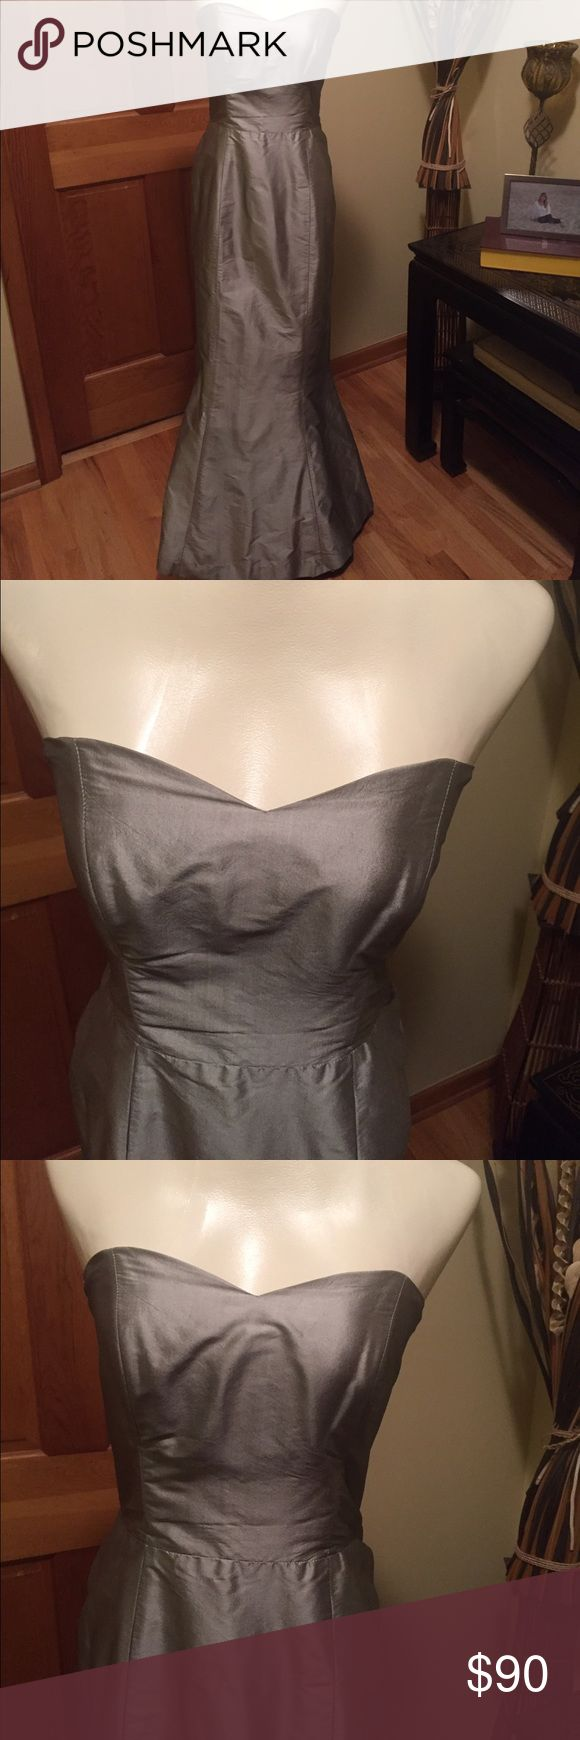 """❤️💋❣️Gorgeous Coren Moore formal dress Coren Moore formal gown - fitted mermaid style - silver/gray color. Strapless and flattering. Recently cleaned - small spot on the end of the dress that was noticed after cleaning. Not noticeable at all when worn. Other than that - dress is in excellent beautiful condition. Dress has been hemmed - not professionally. Price reflects flaw.  Breast approx 32"""" - waist approx 28"""" - hips approx 38"""" and length approx 52"""" Coren Moore Dresses Strapless"""